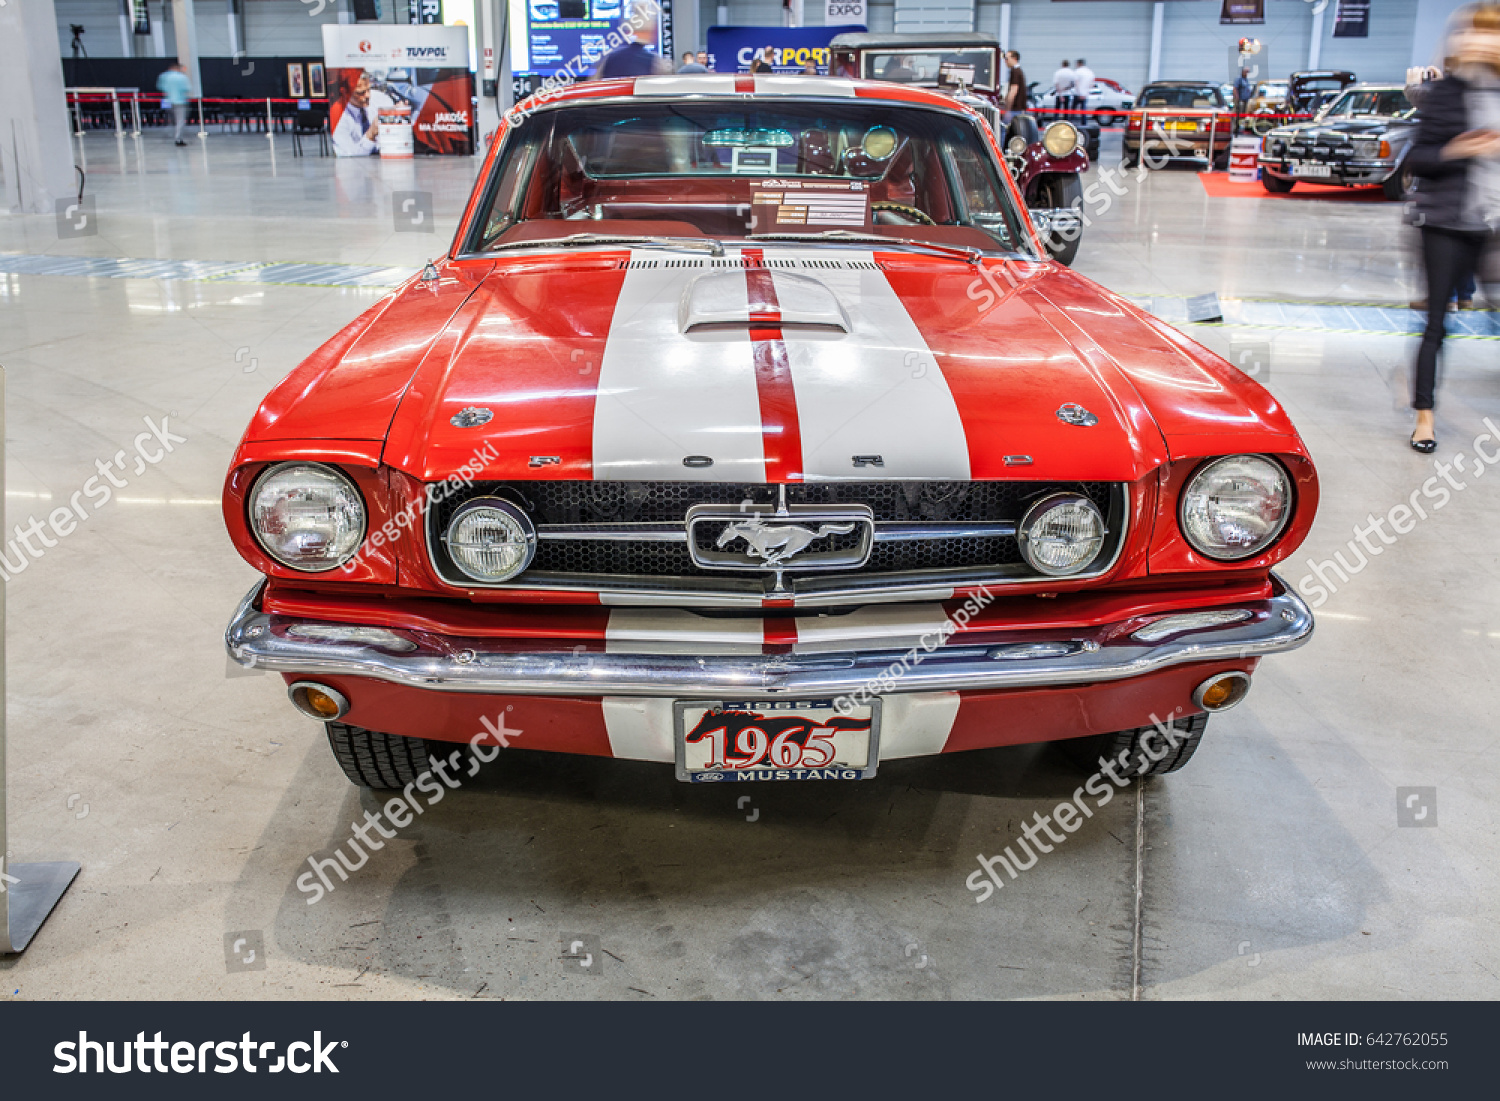 Nadarzyn poland may 13 2017 warsaw oldtimer show ford mustang gt 350